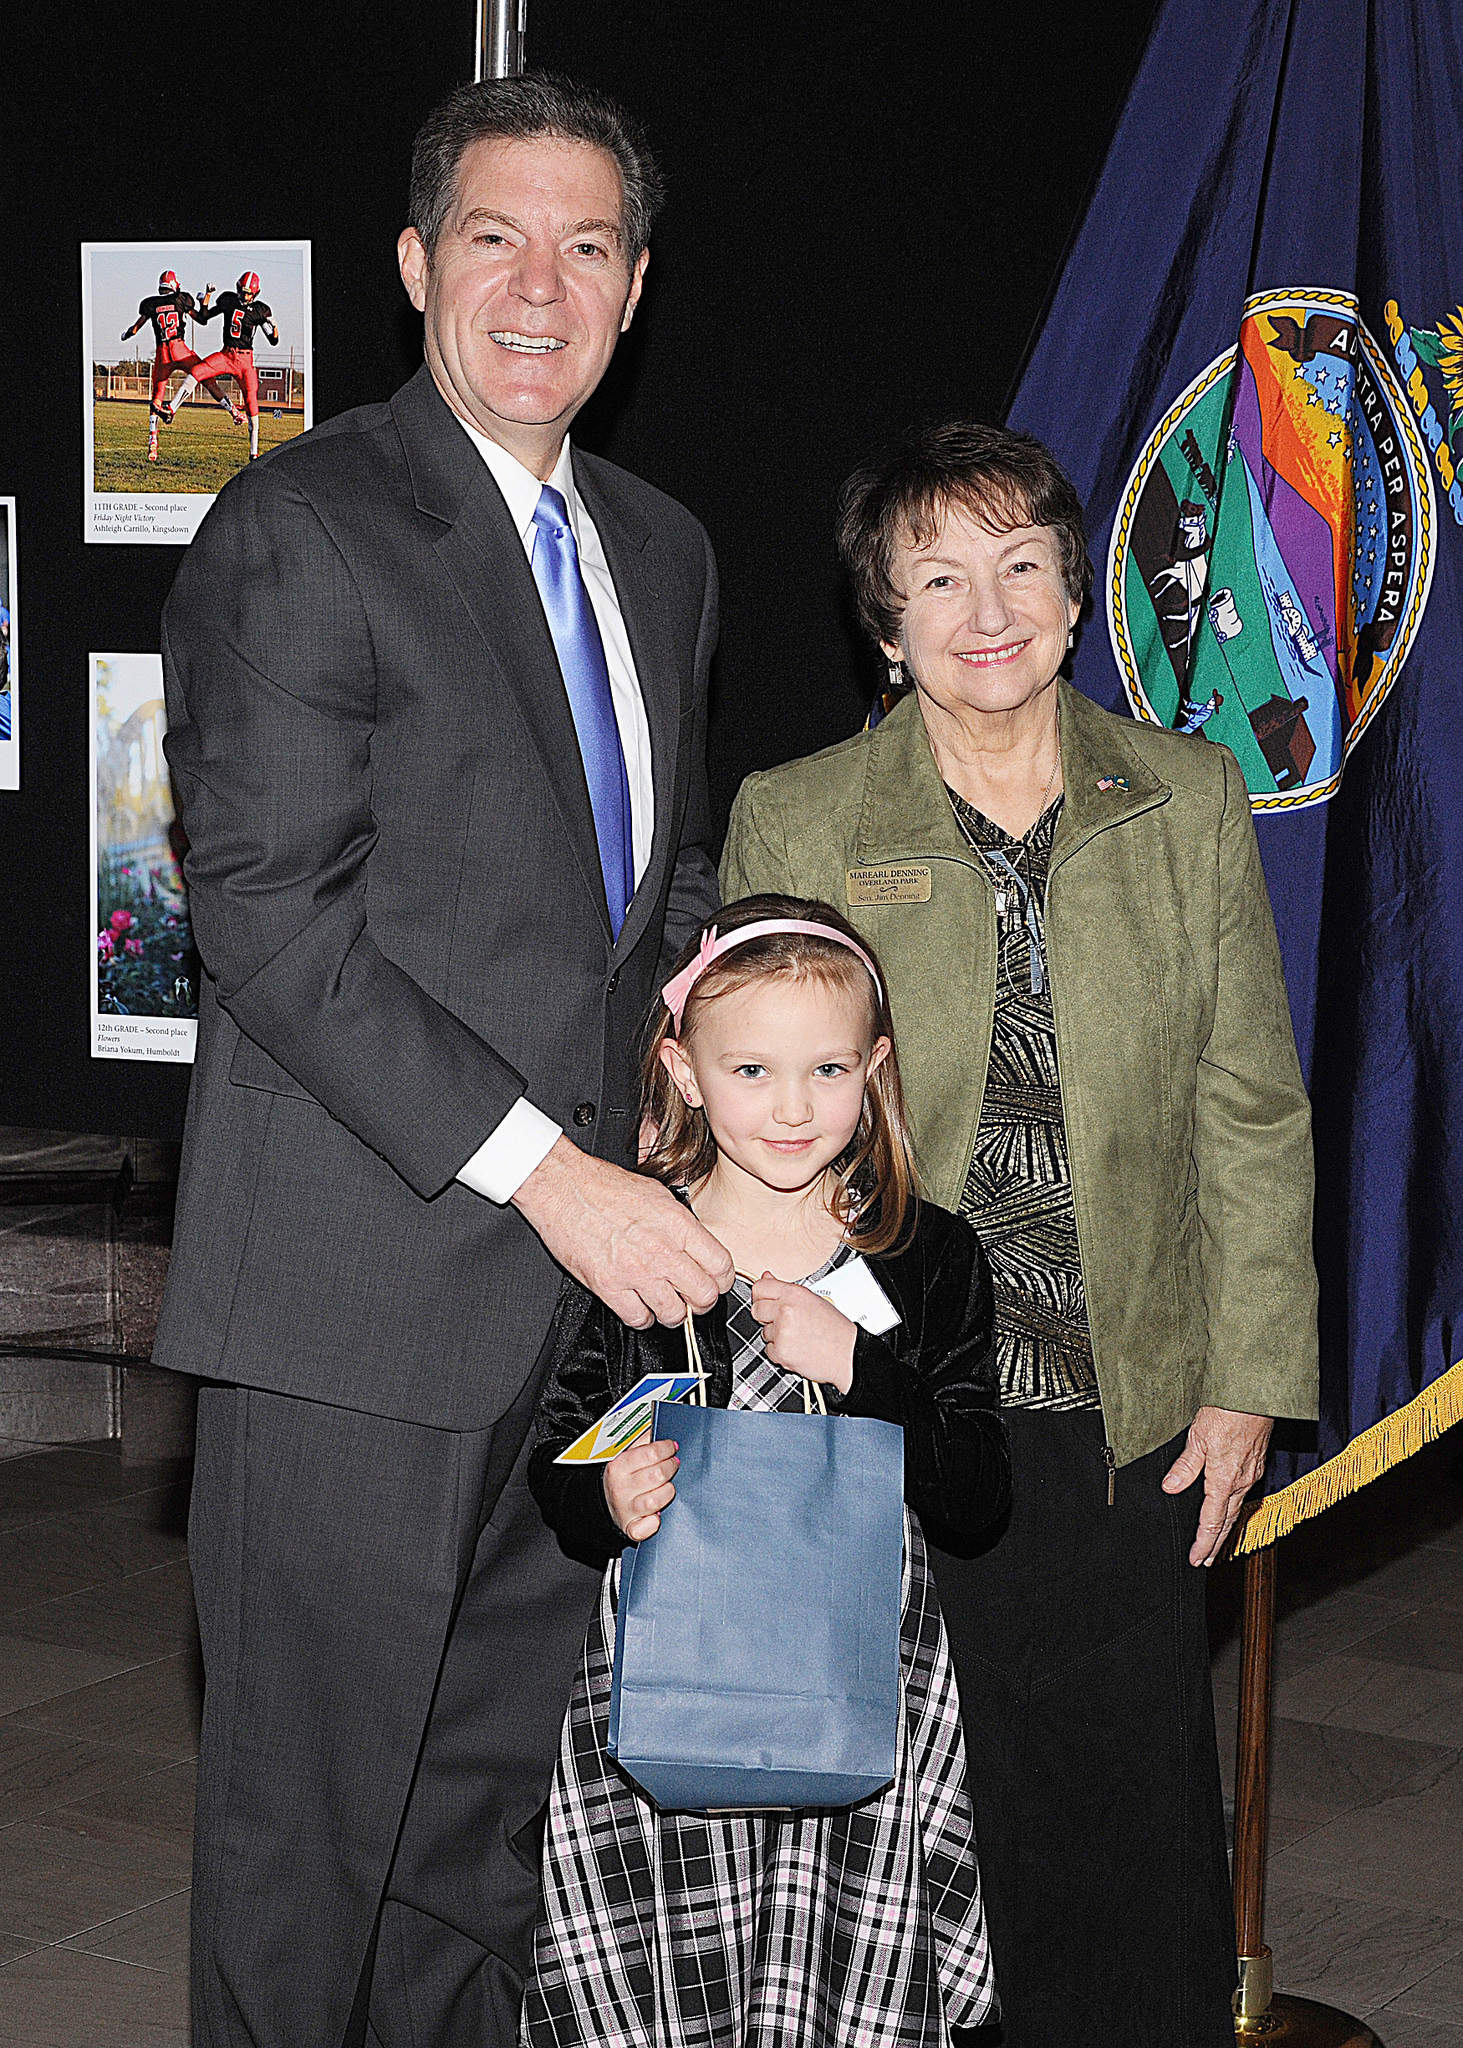 First grade winner Michaela Ferguson with Governor Sam Brownback and Marearl Denning